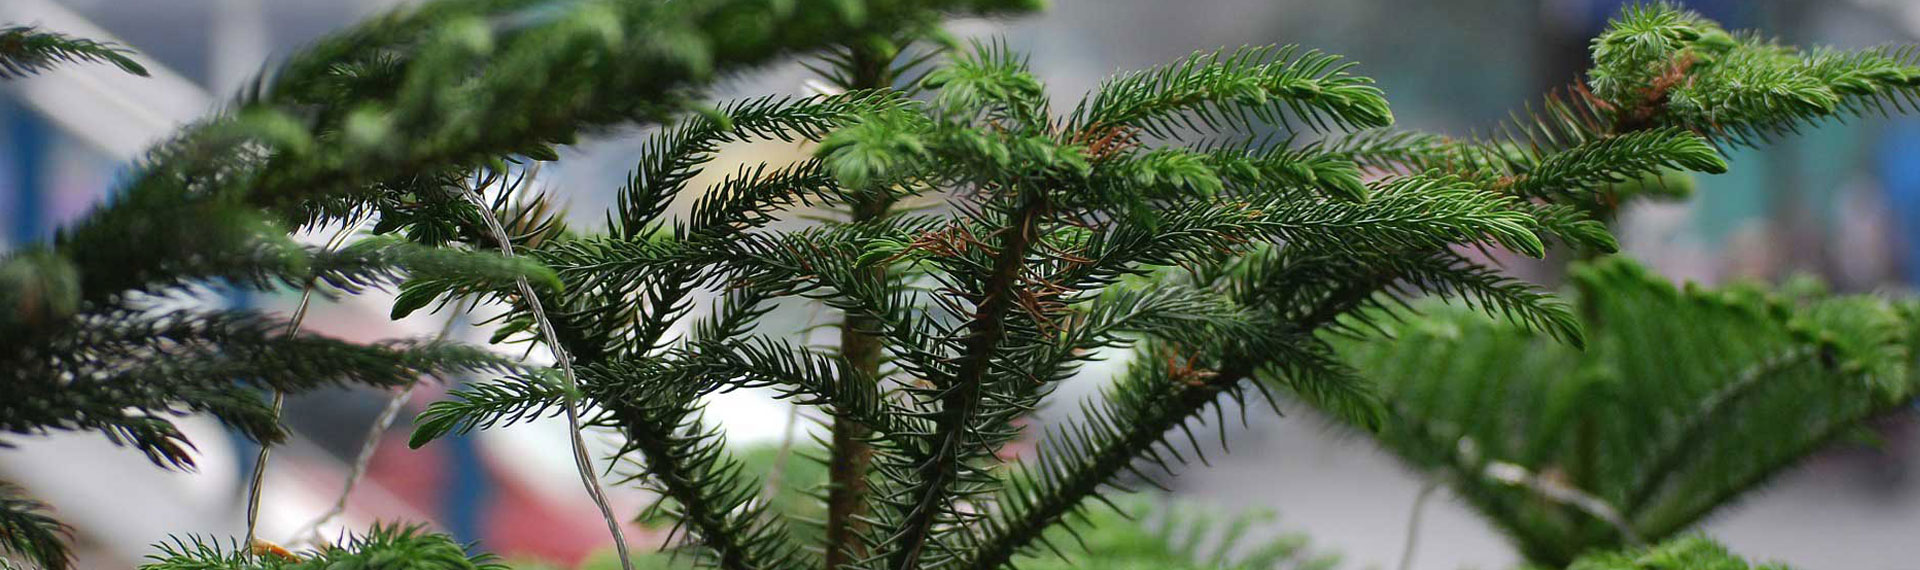 Houseplant of the Month: Norfolk Island Pine - Copia Home ... on norfolk pine plant, norfolk pine growth rate, norfolk pine care, norfolk pine watering,